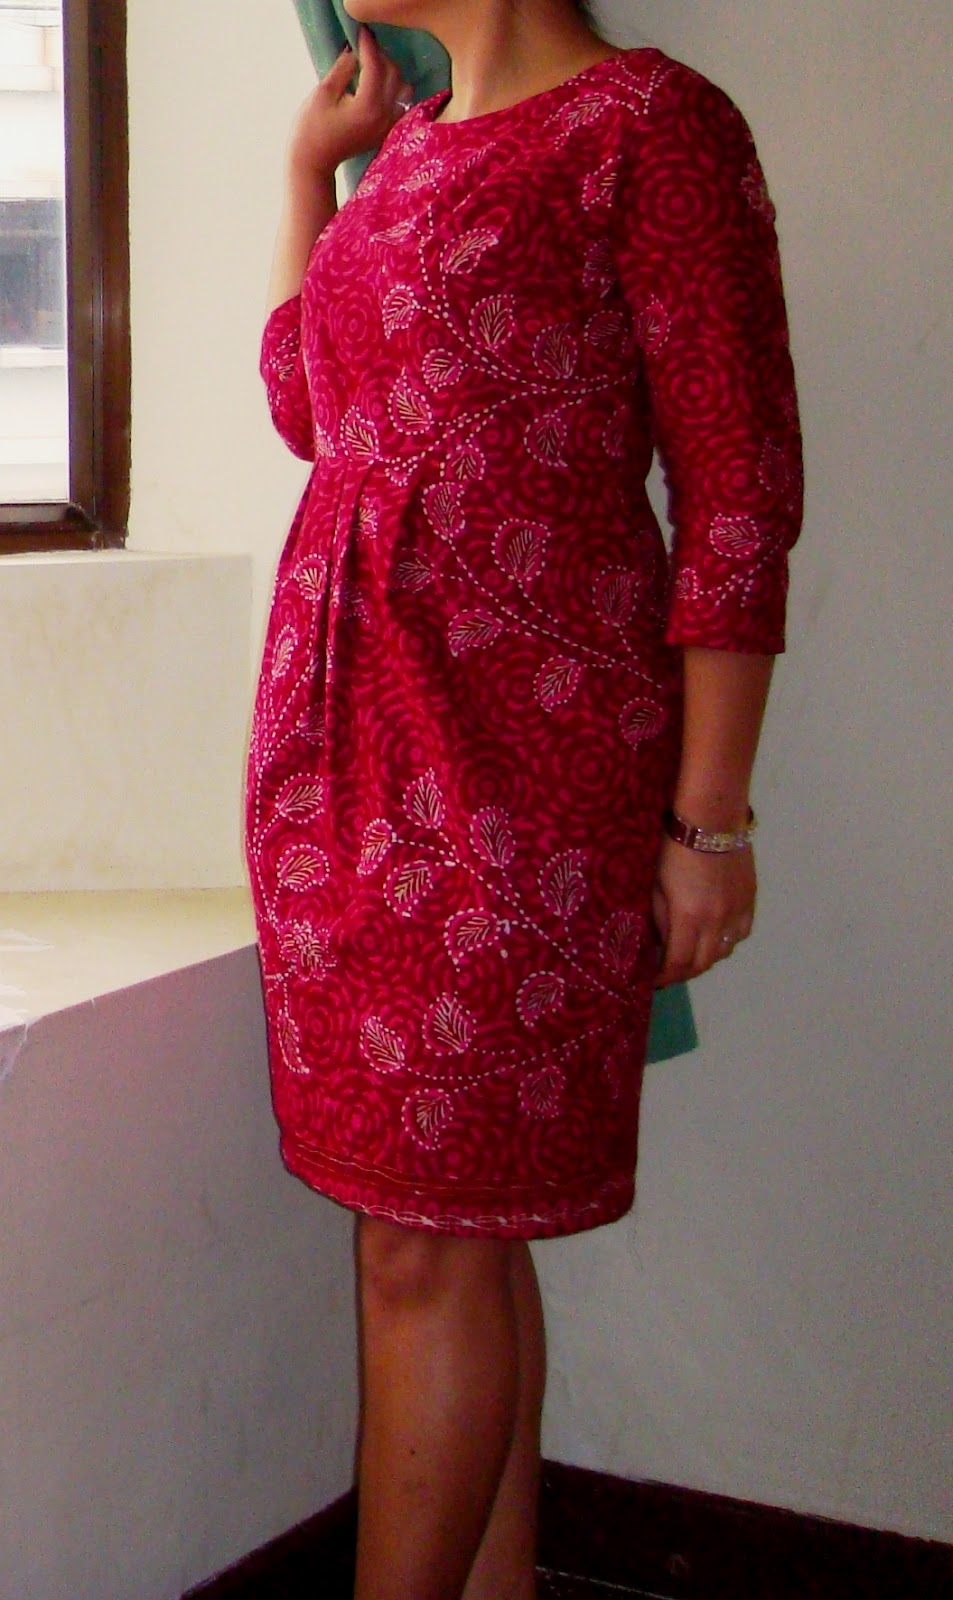 http://velvetribbonsew.blogspot.com/2012/02/madura-batik-dress.html